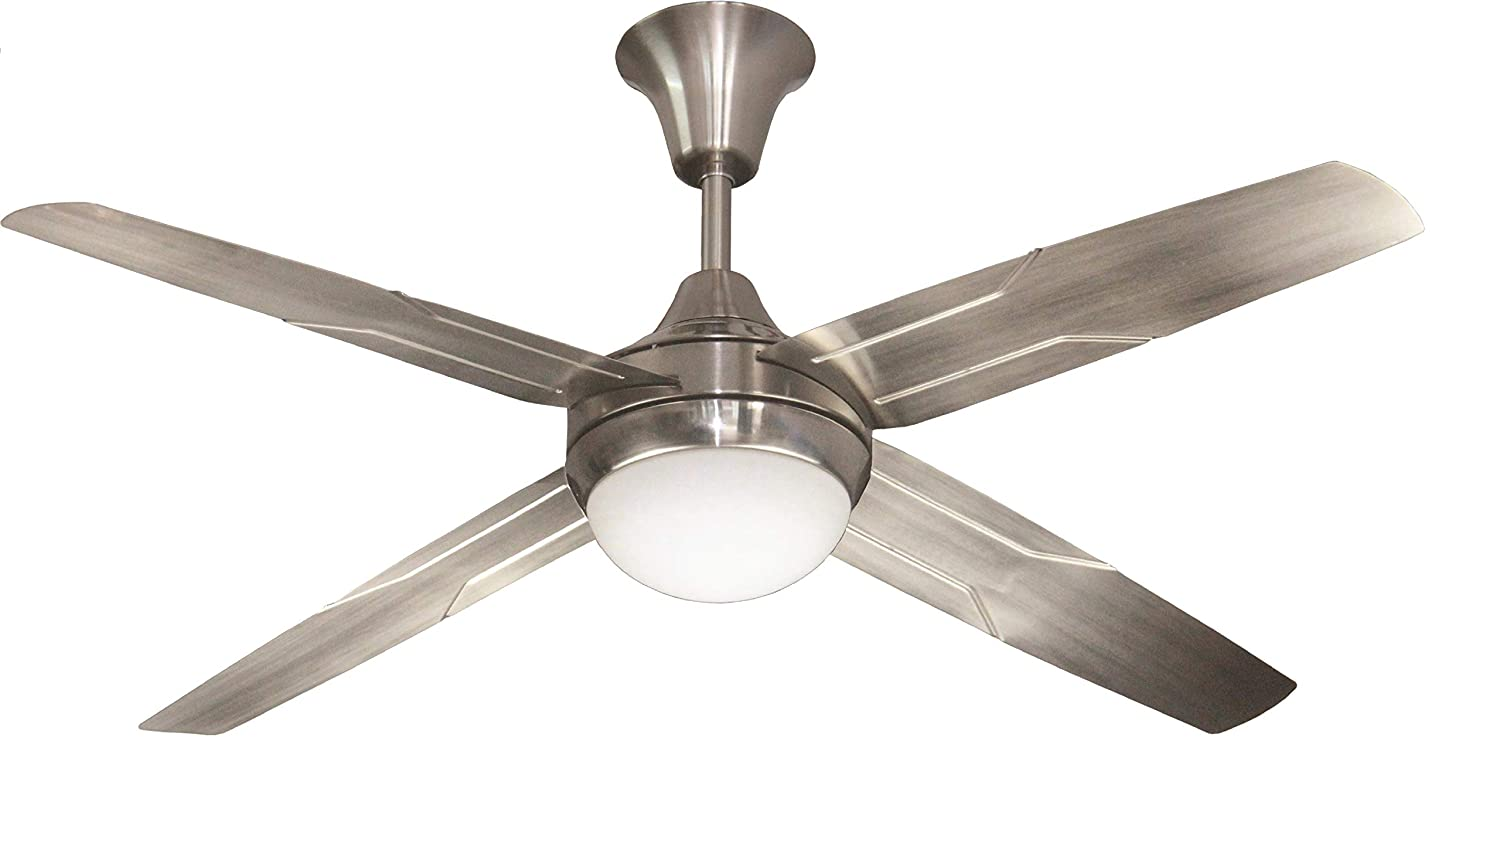 Crompton Trigger Glow 1.2 M Brushed Steel Ceiling Fan